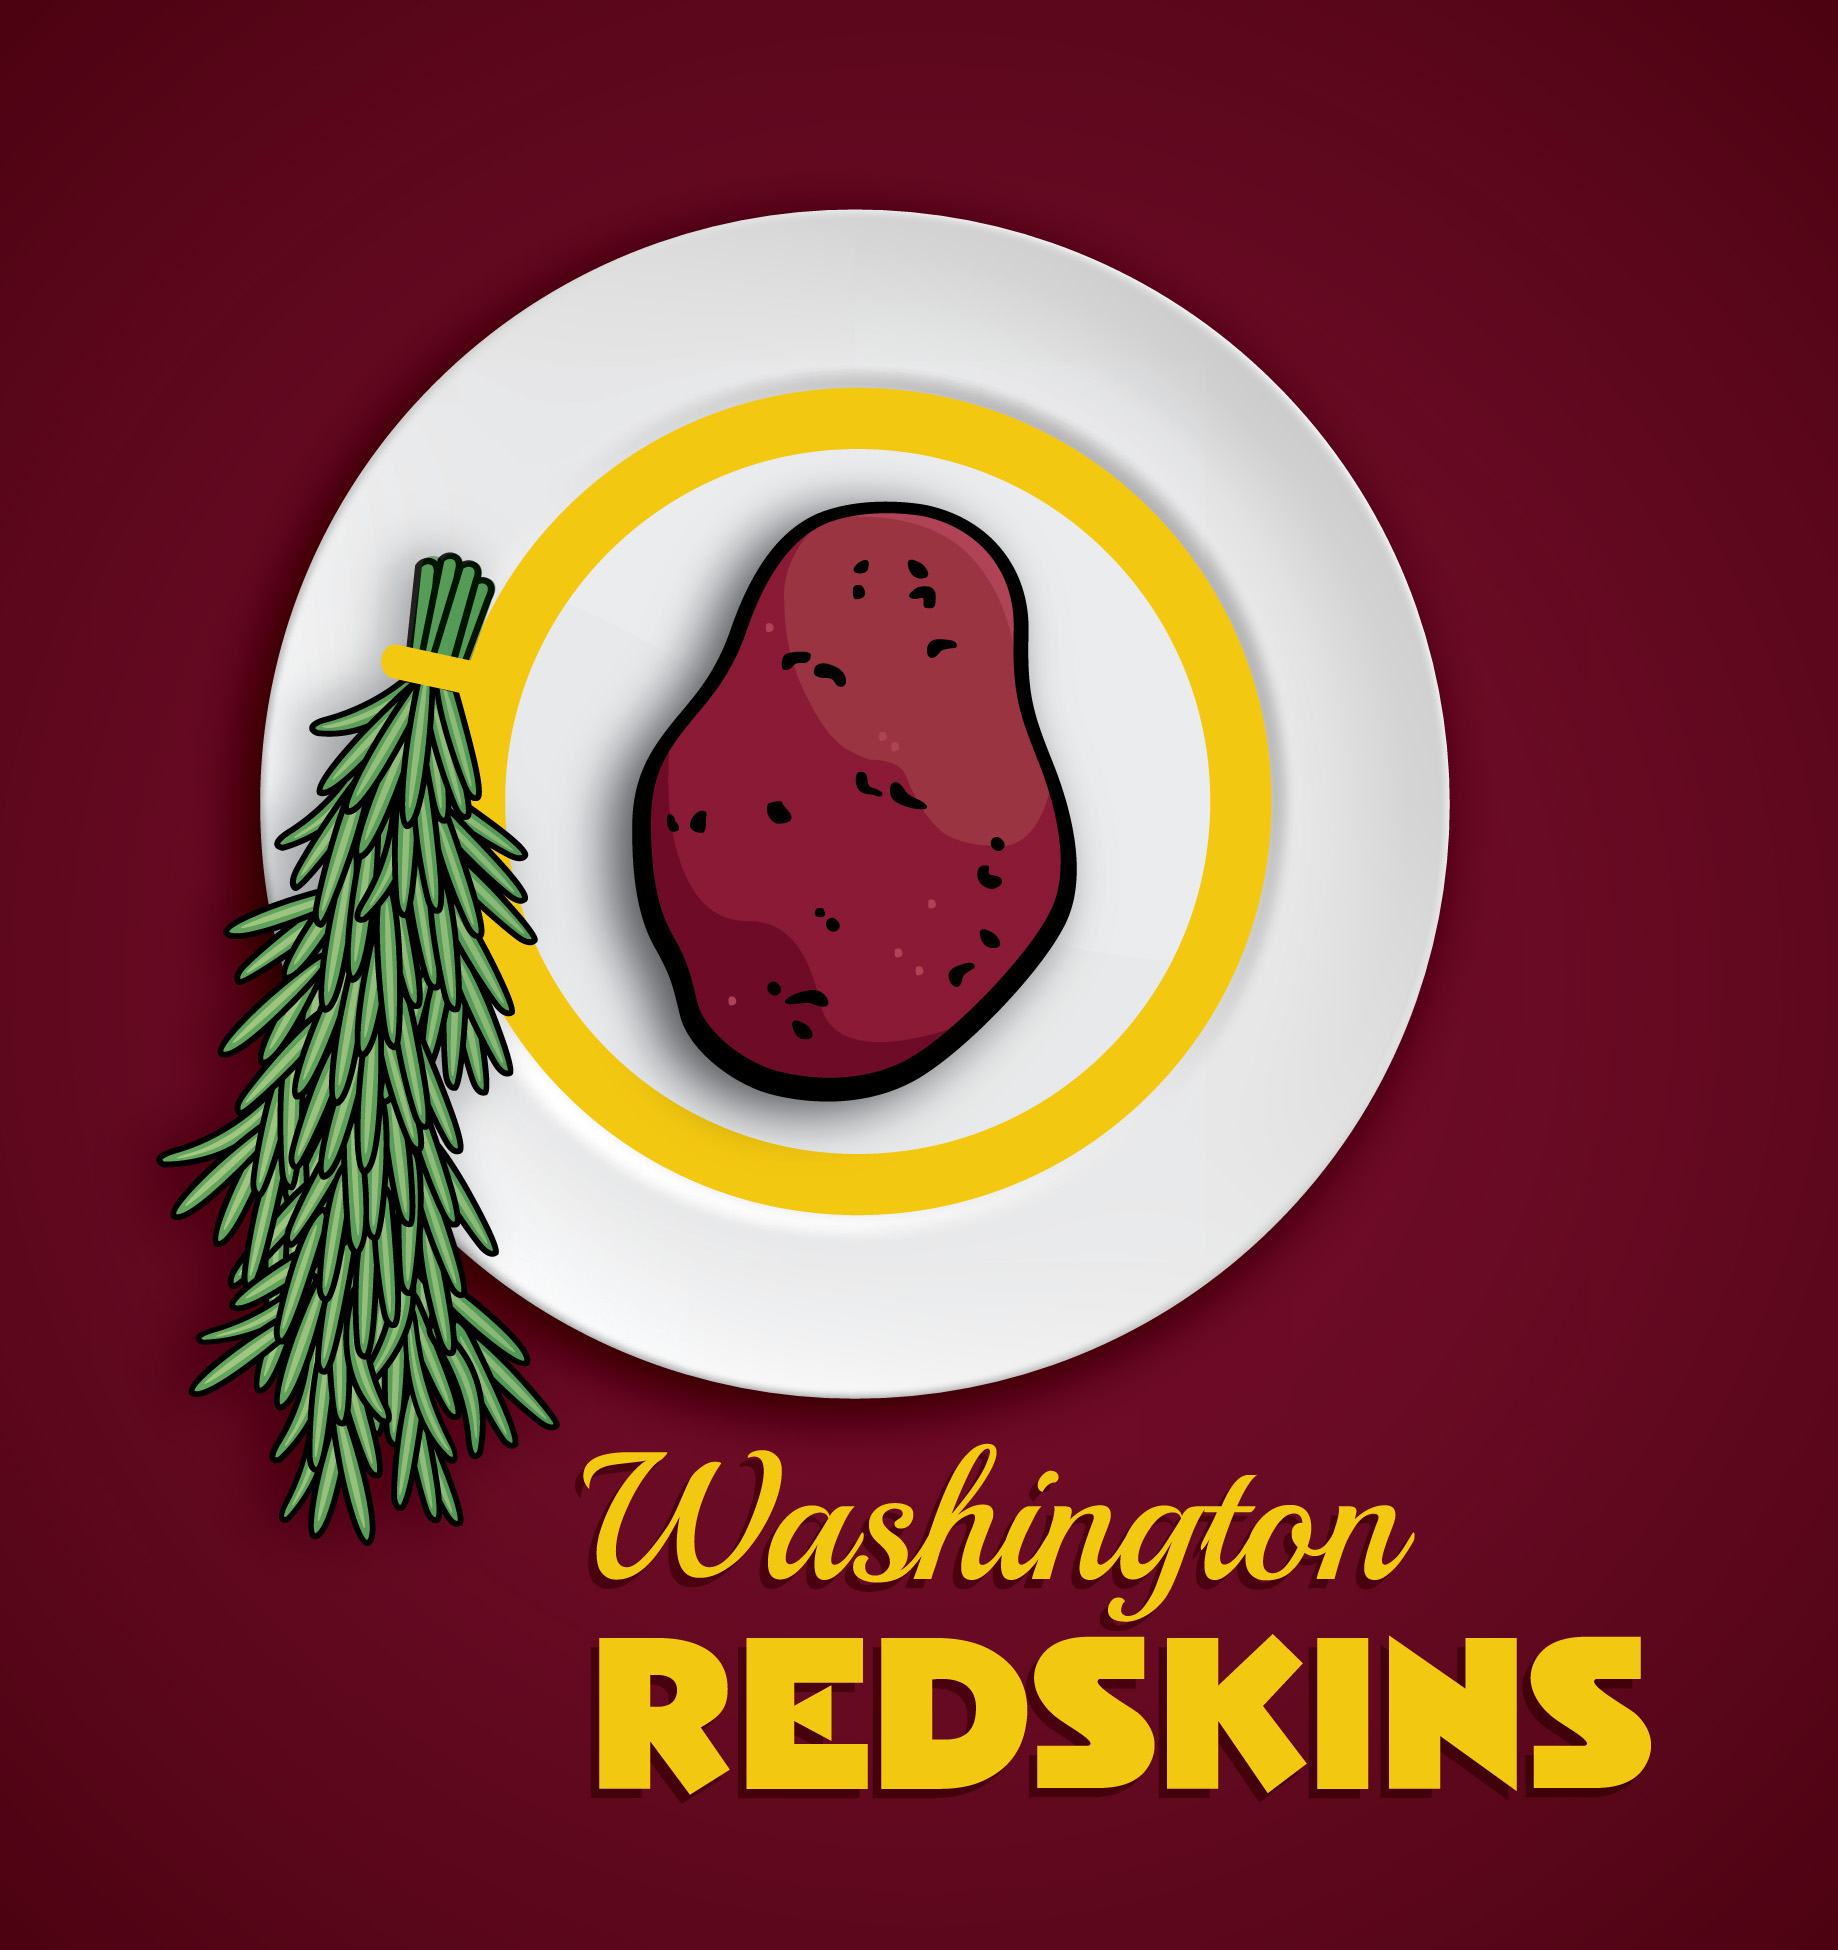 PETA Redskins logo:  Animal Rights Group Offers A compromise (PHOTO)